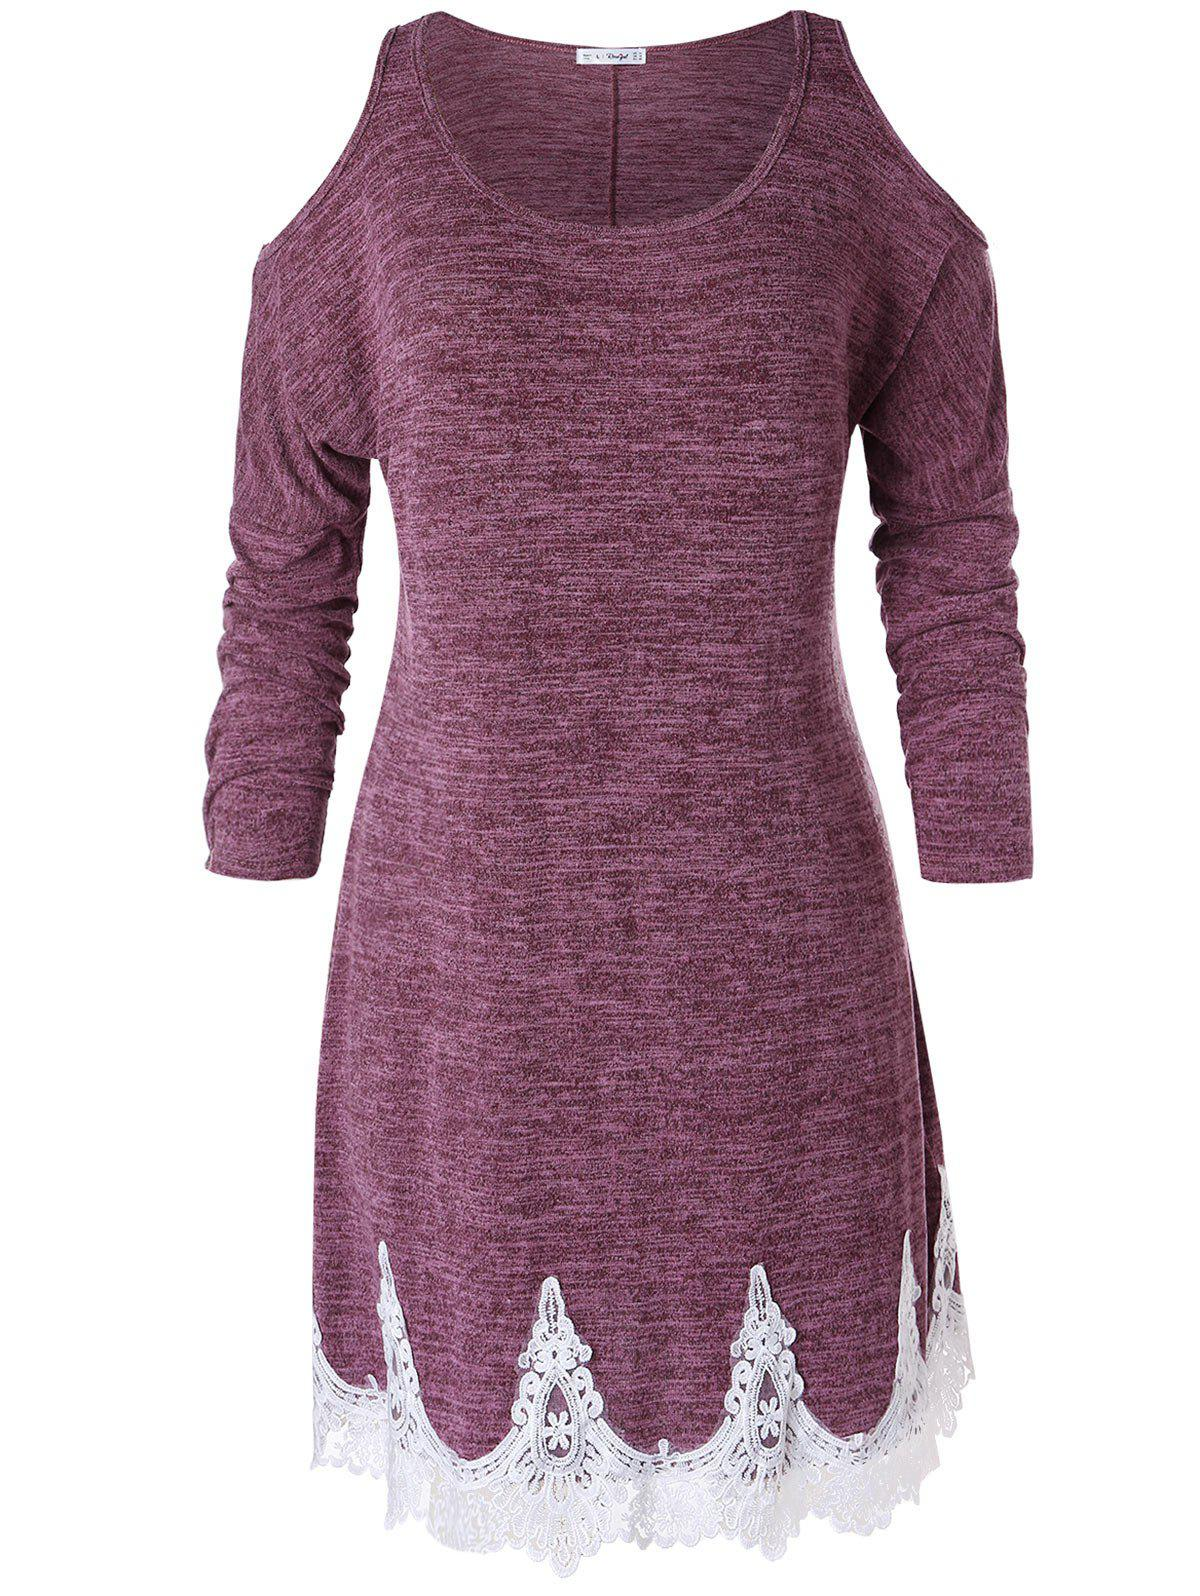 Plus Size Cold Shoulder Lace Trim Marled T-shirt - VELVET MAROON 1X